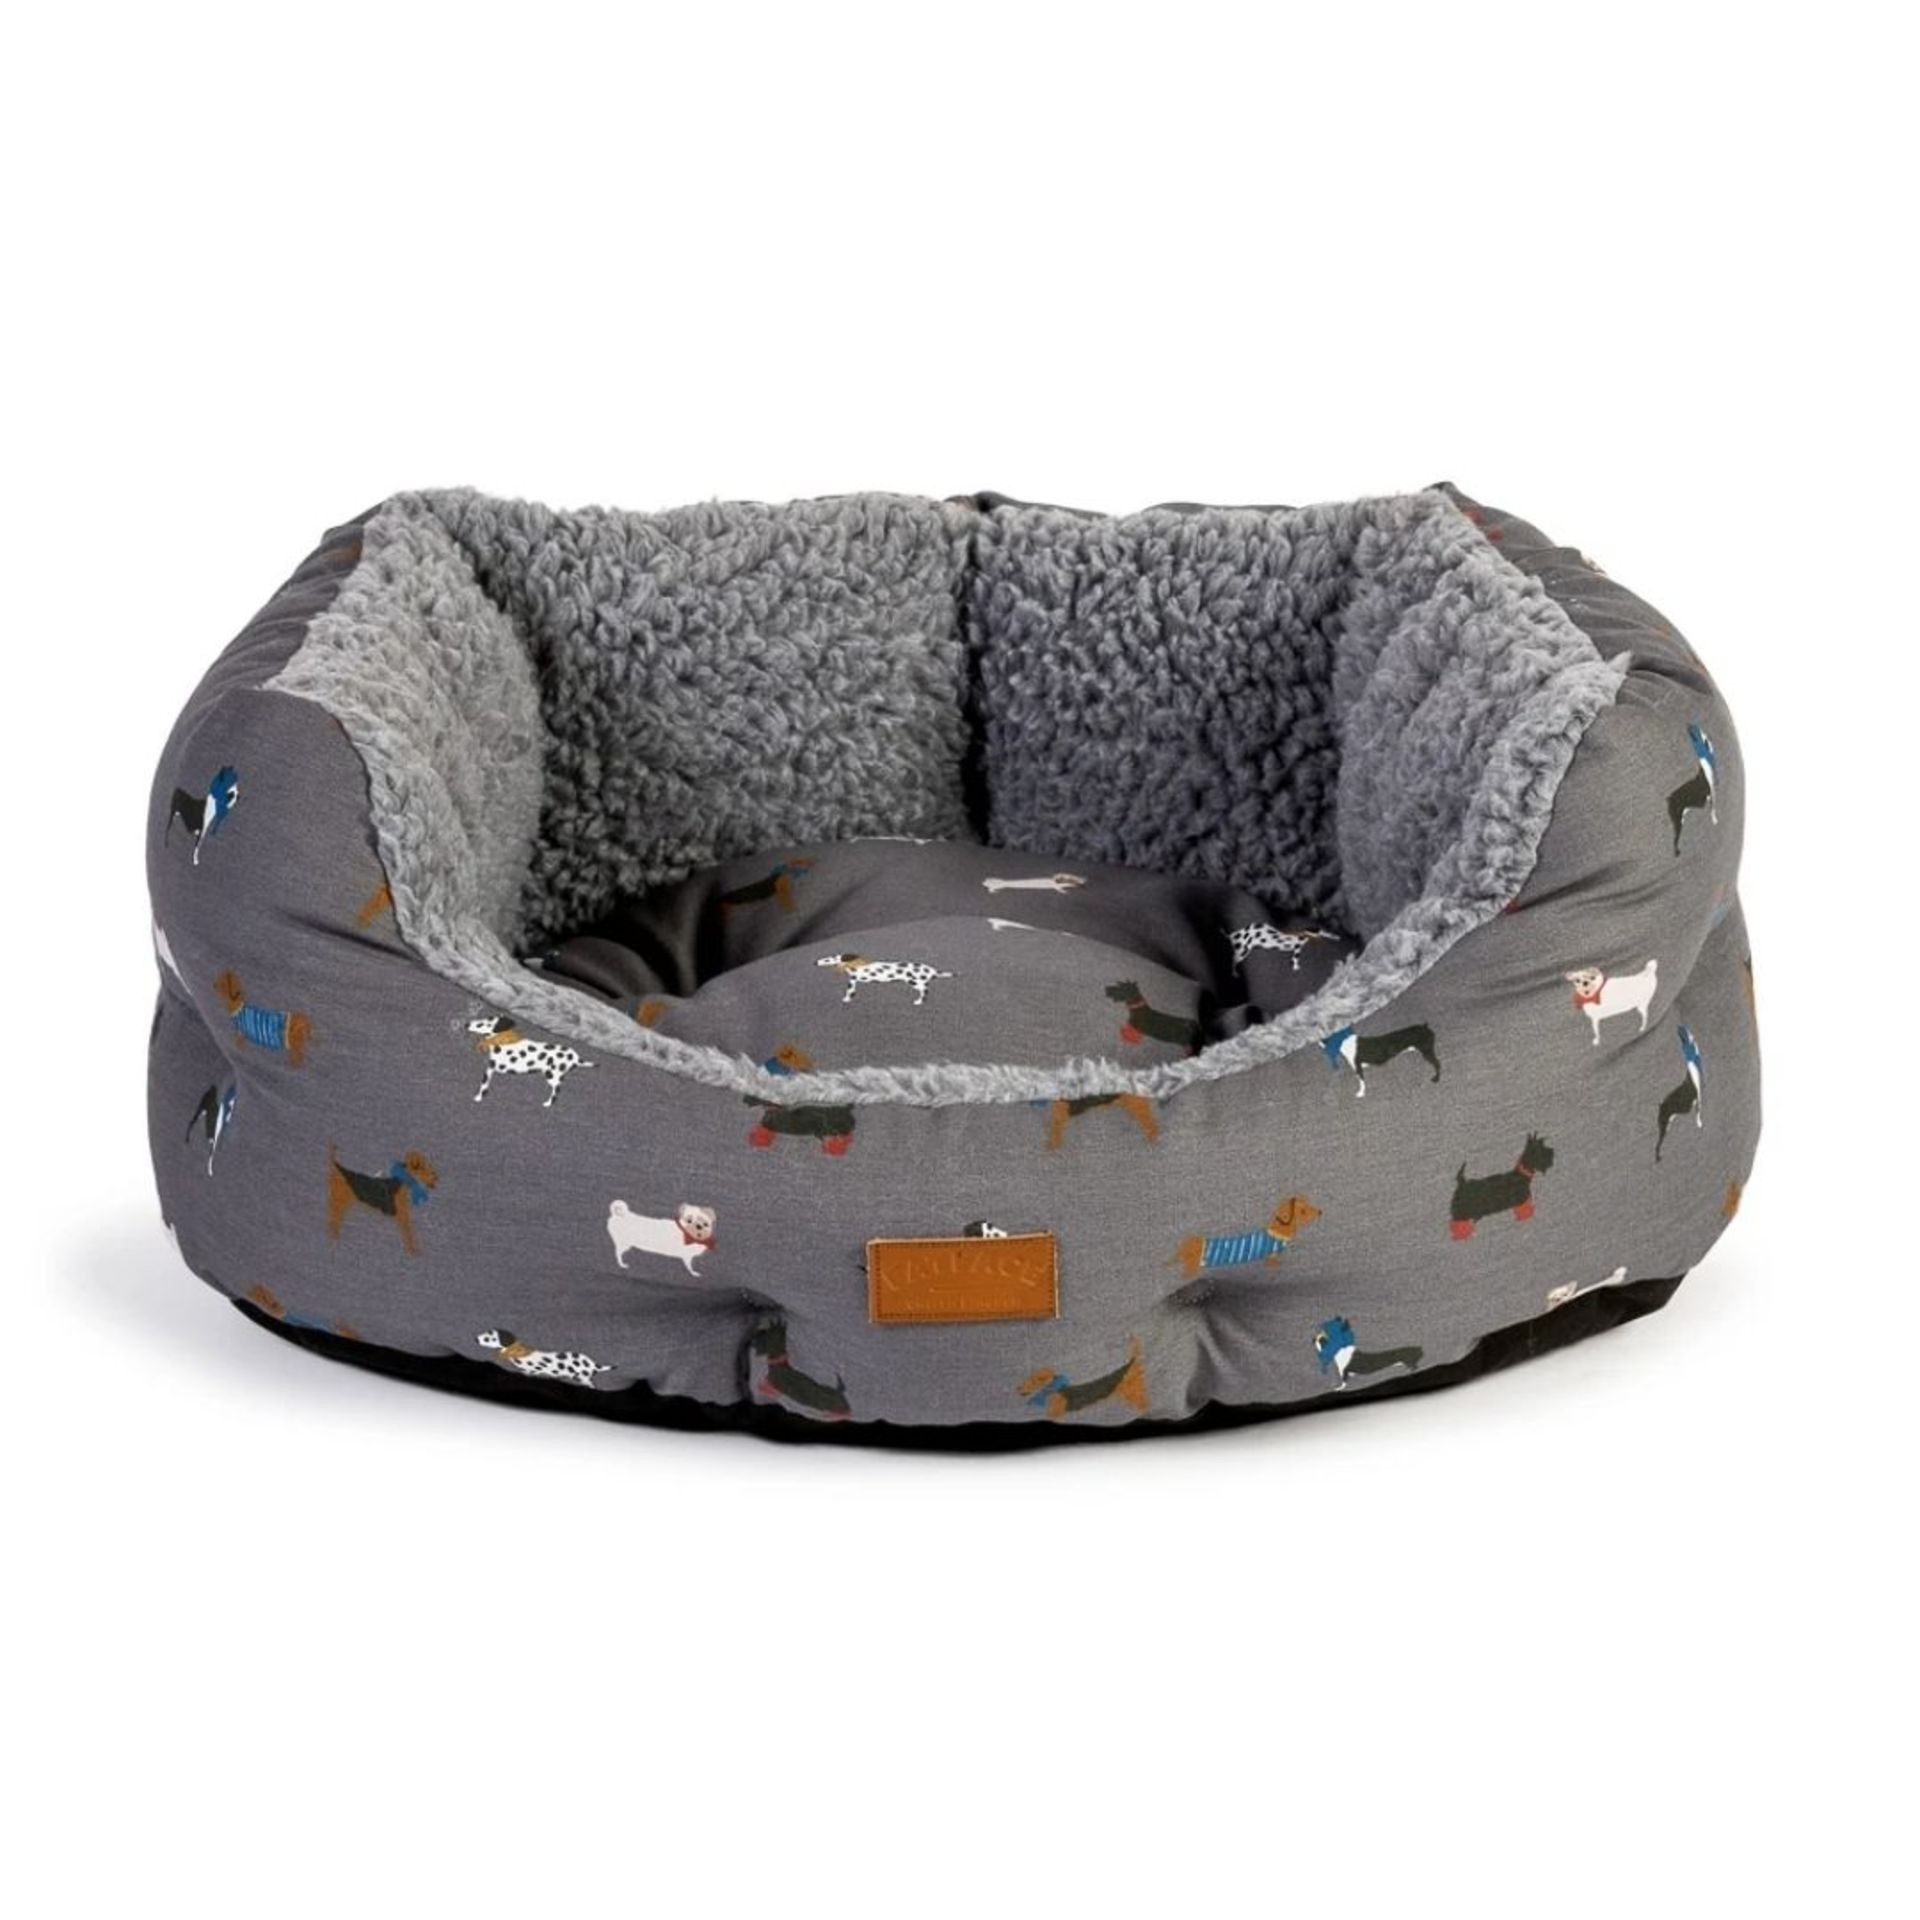 FatFace Marching Dogs Deluxe Slumber Dog Bed M/L